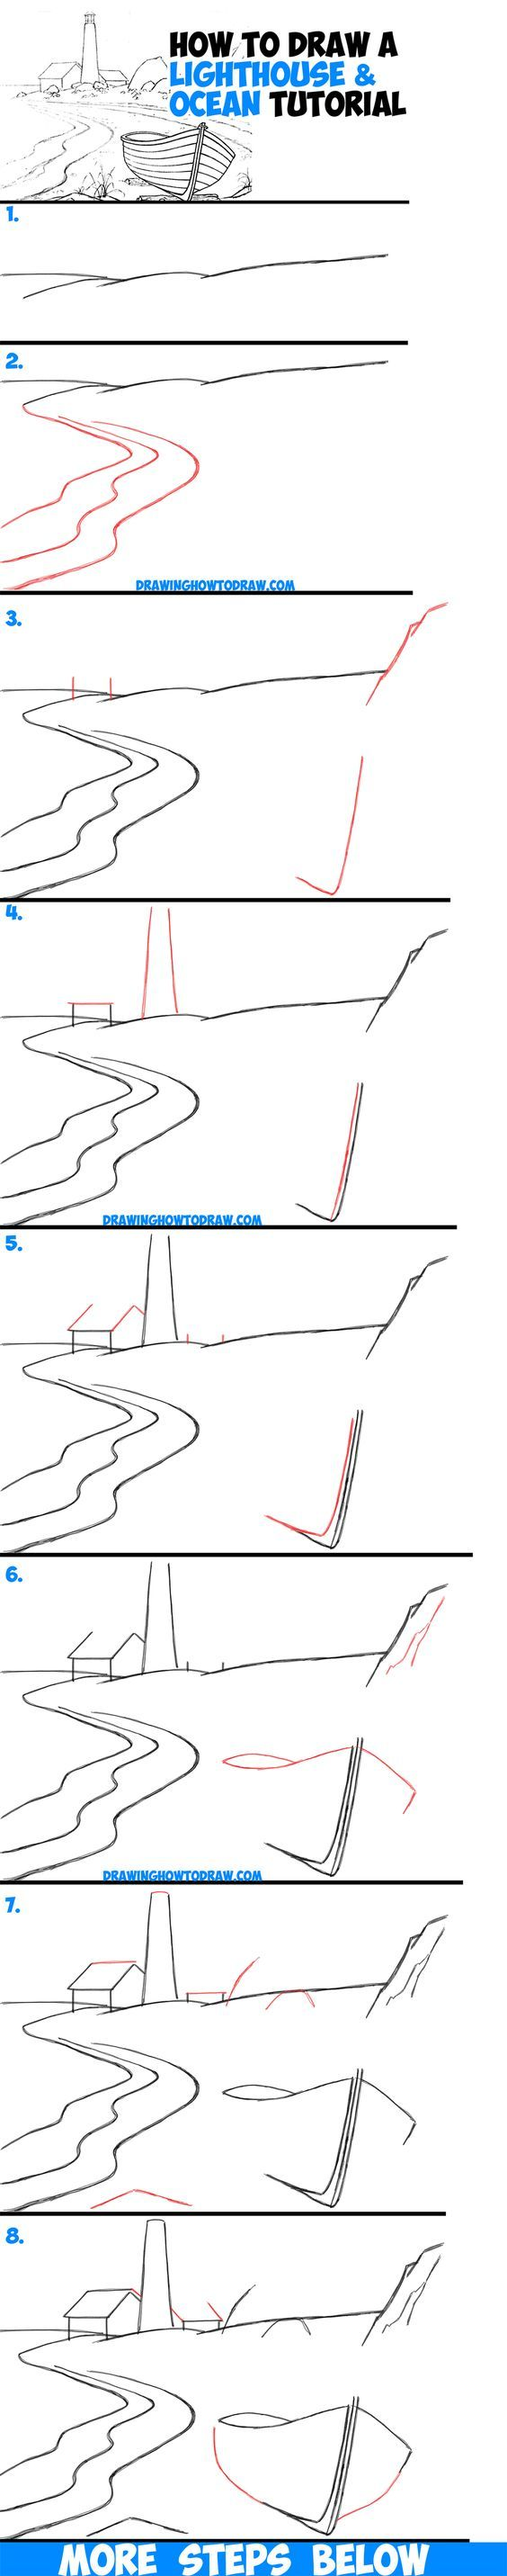 How To Draw A Lighthouse By The Sea Step By Step Drawing Tutorial For  Beginners And